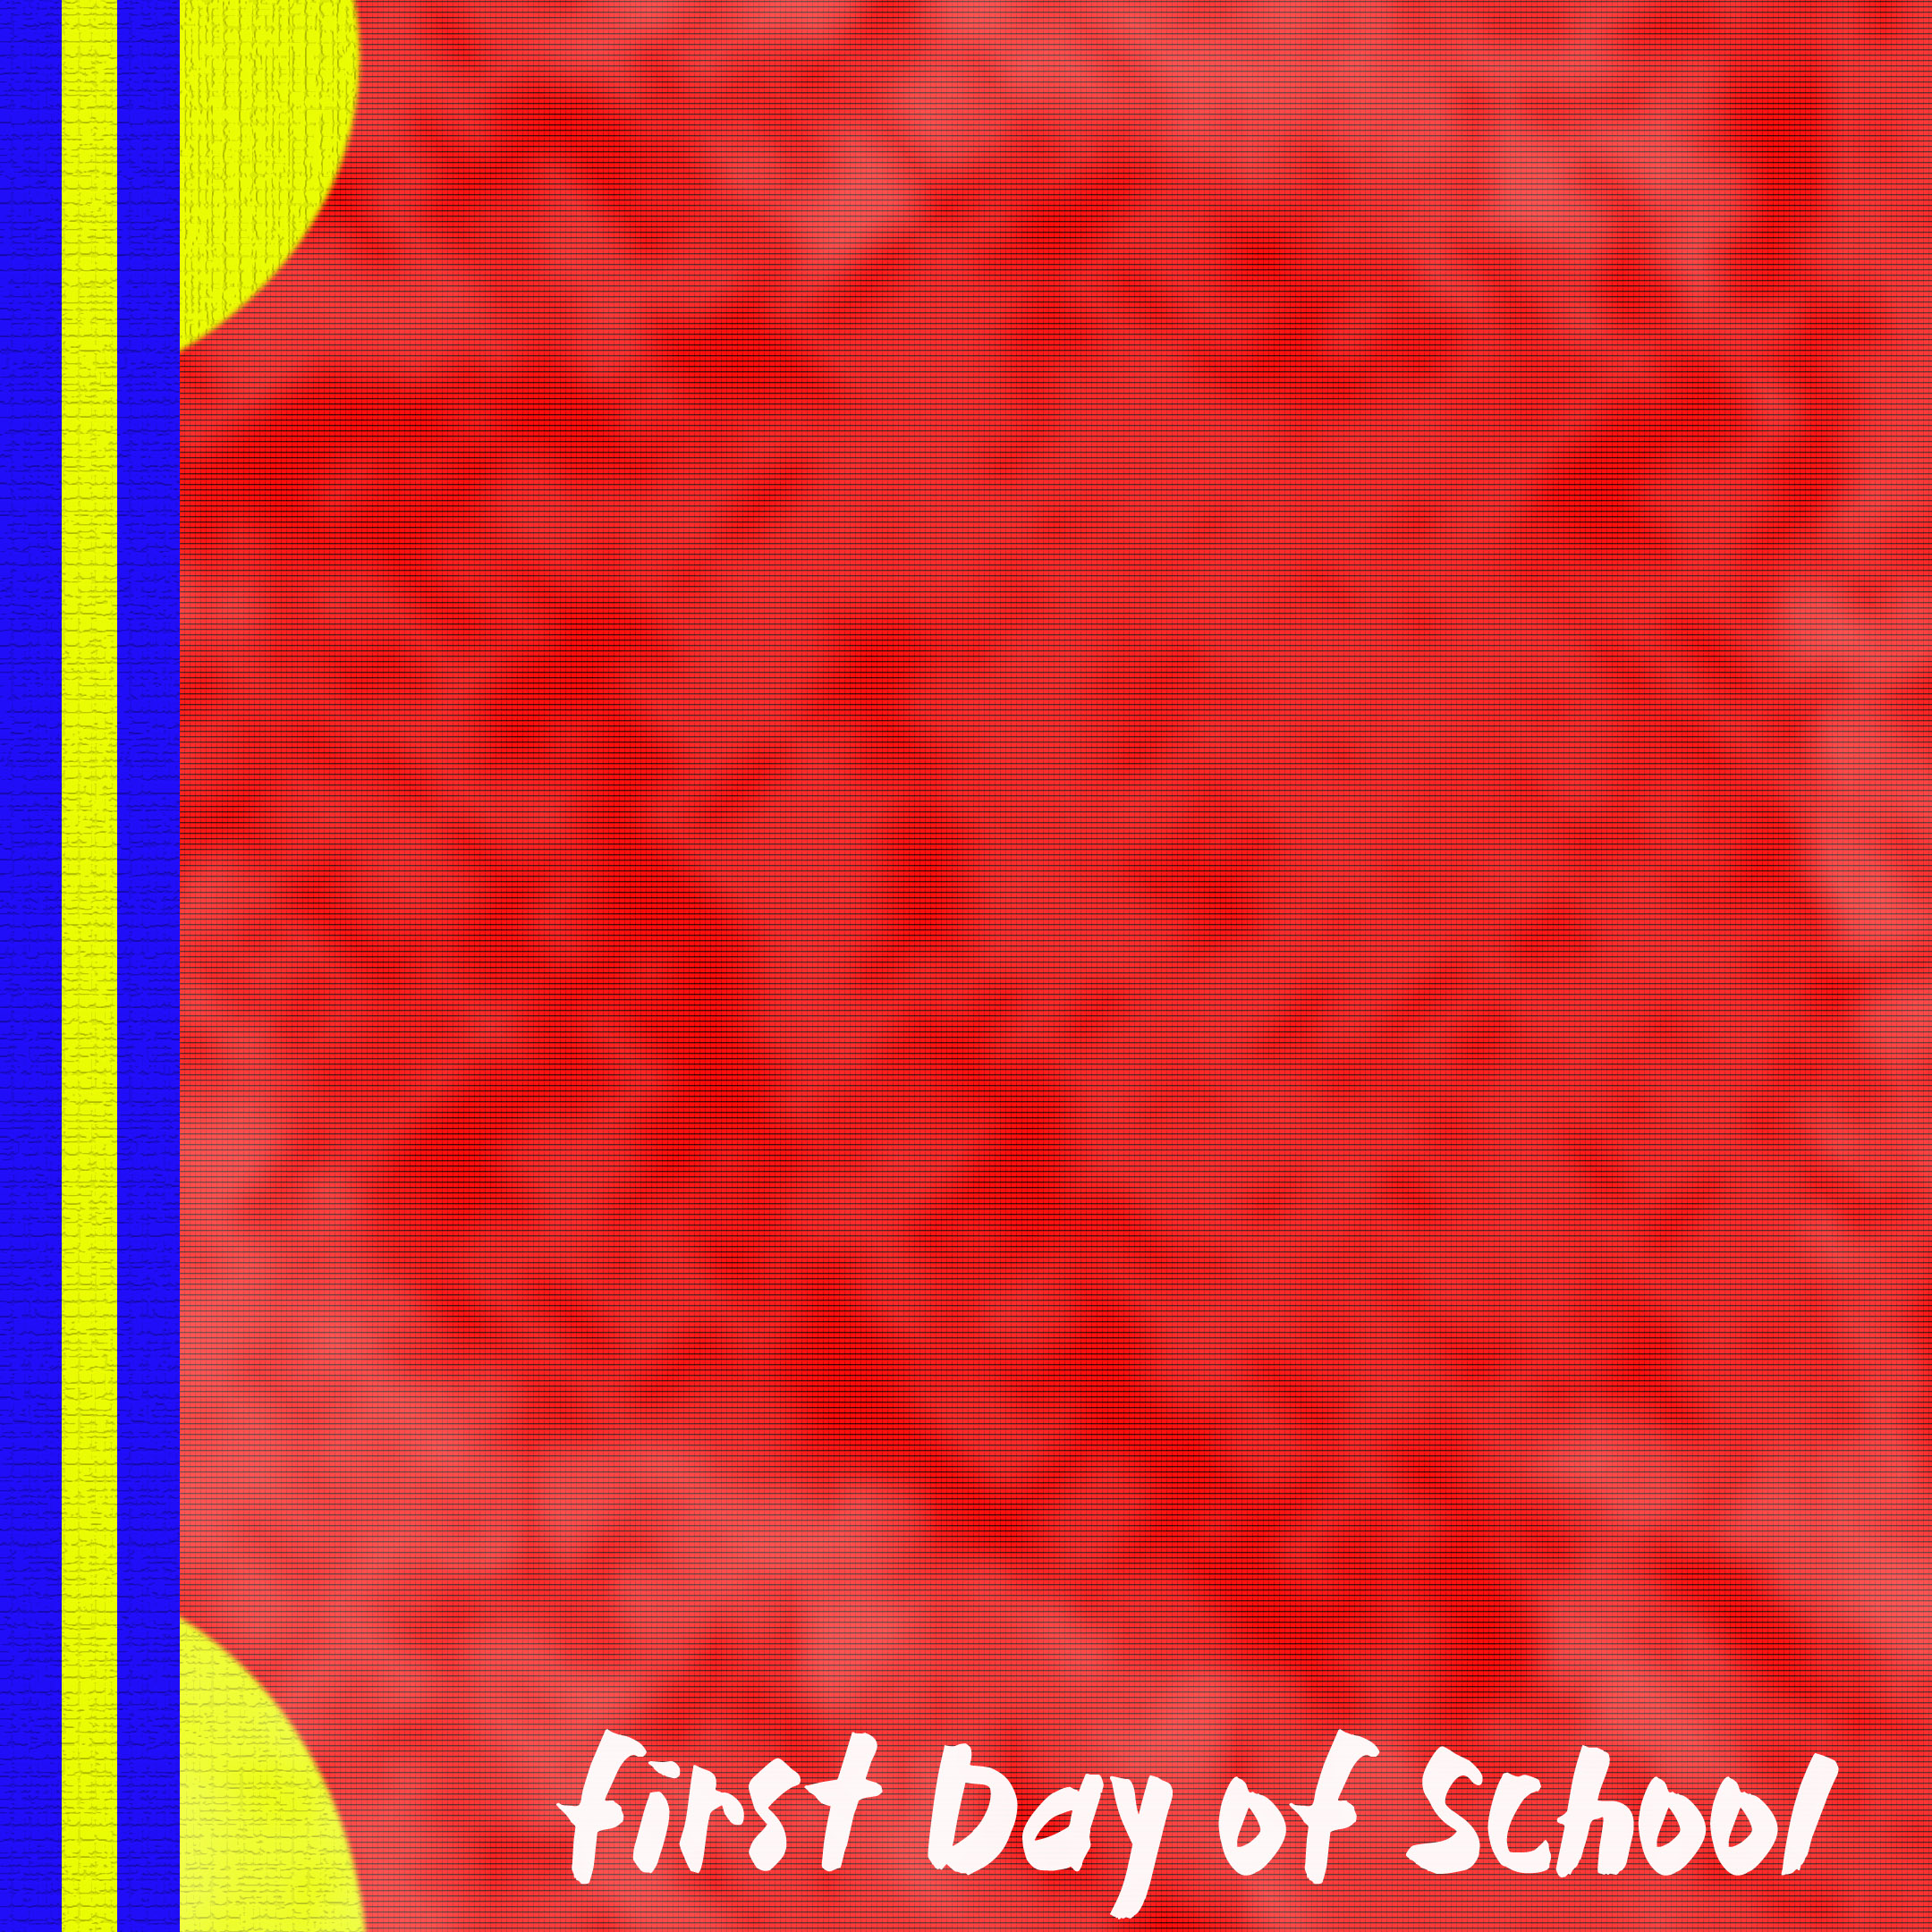 Best 51 First Day of School Wallpaper on HipWallpaper Back to 2160x2160